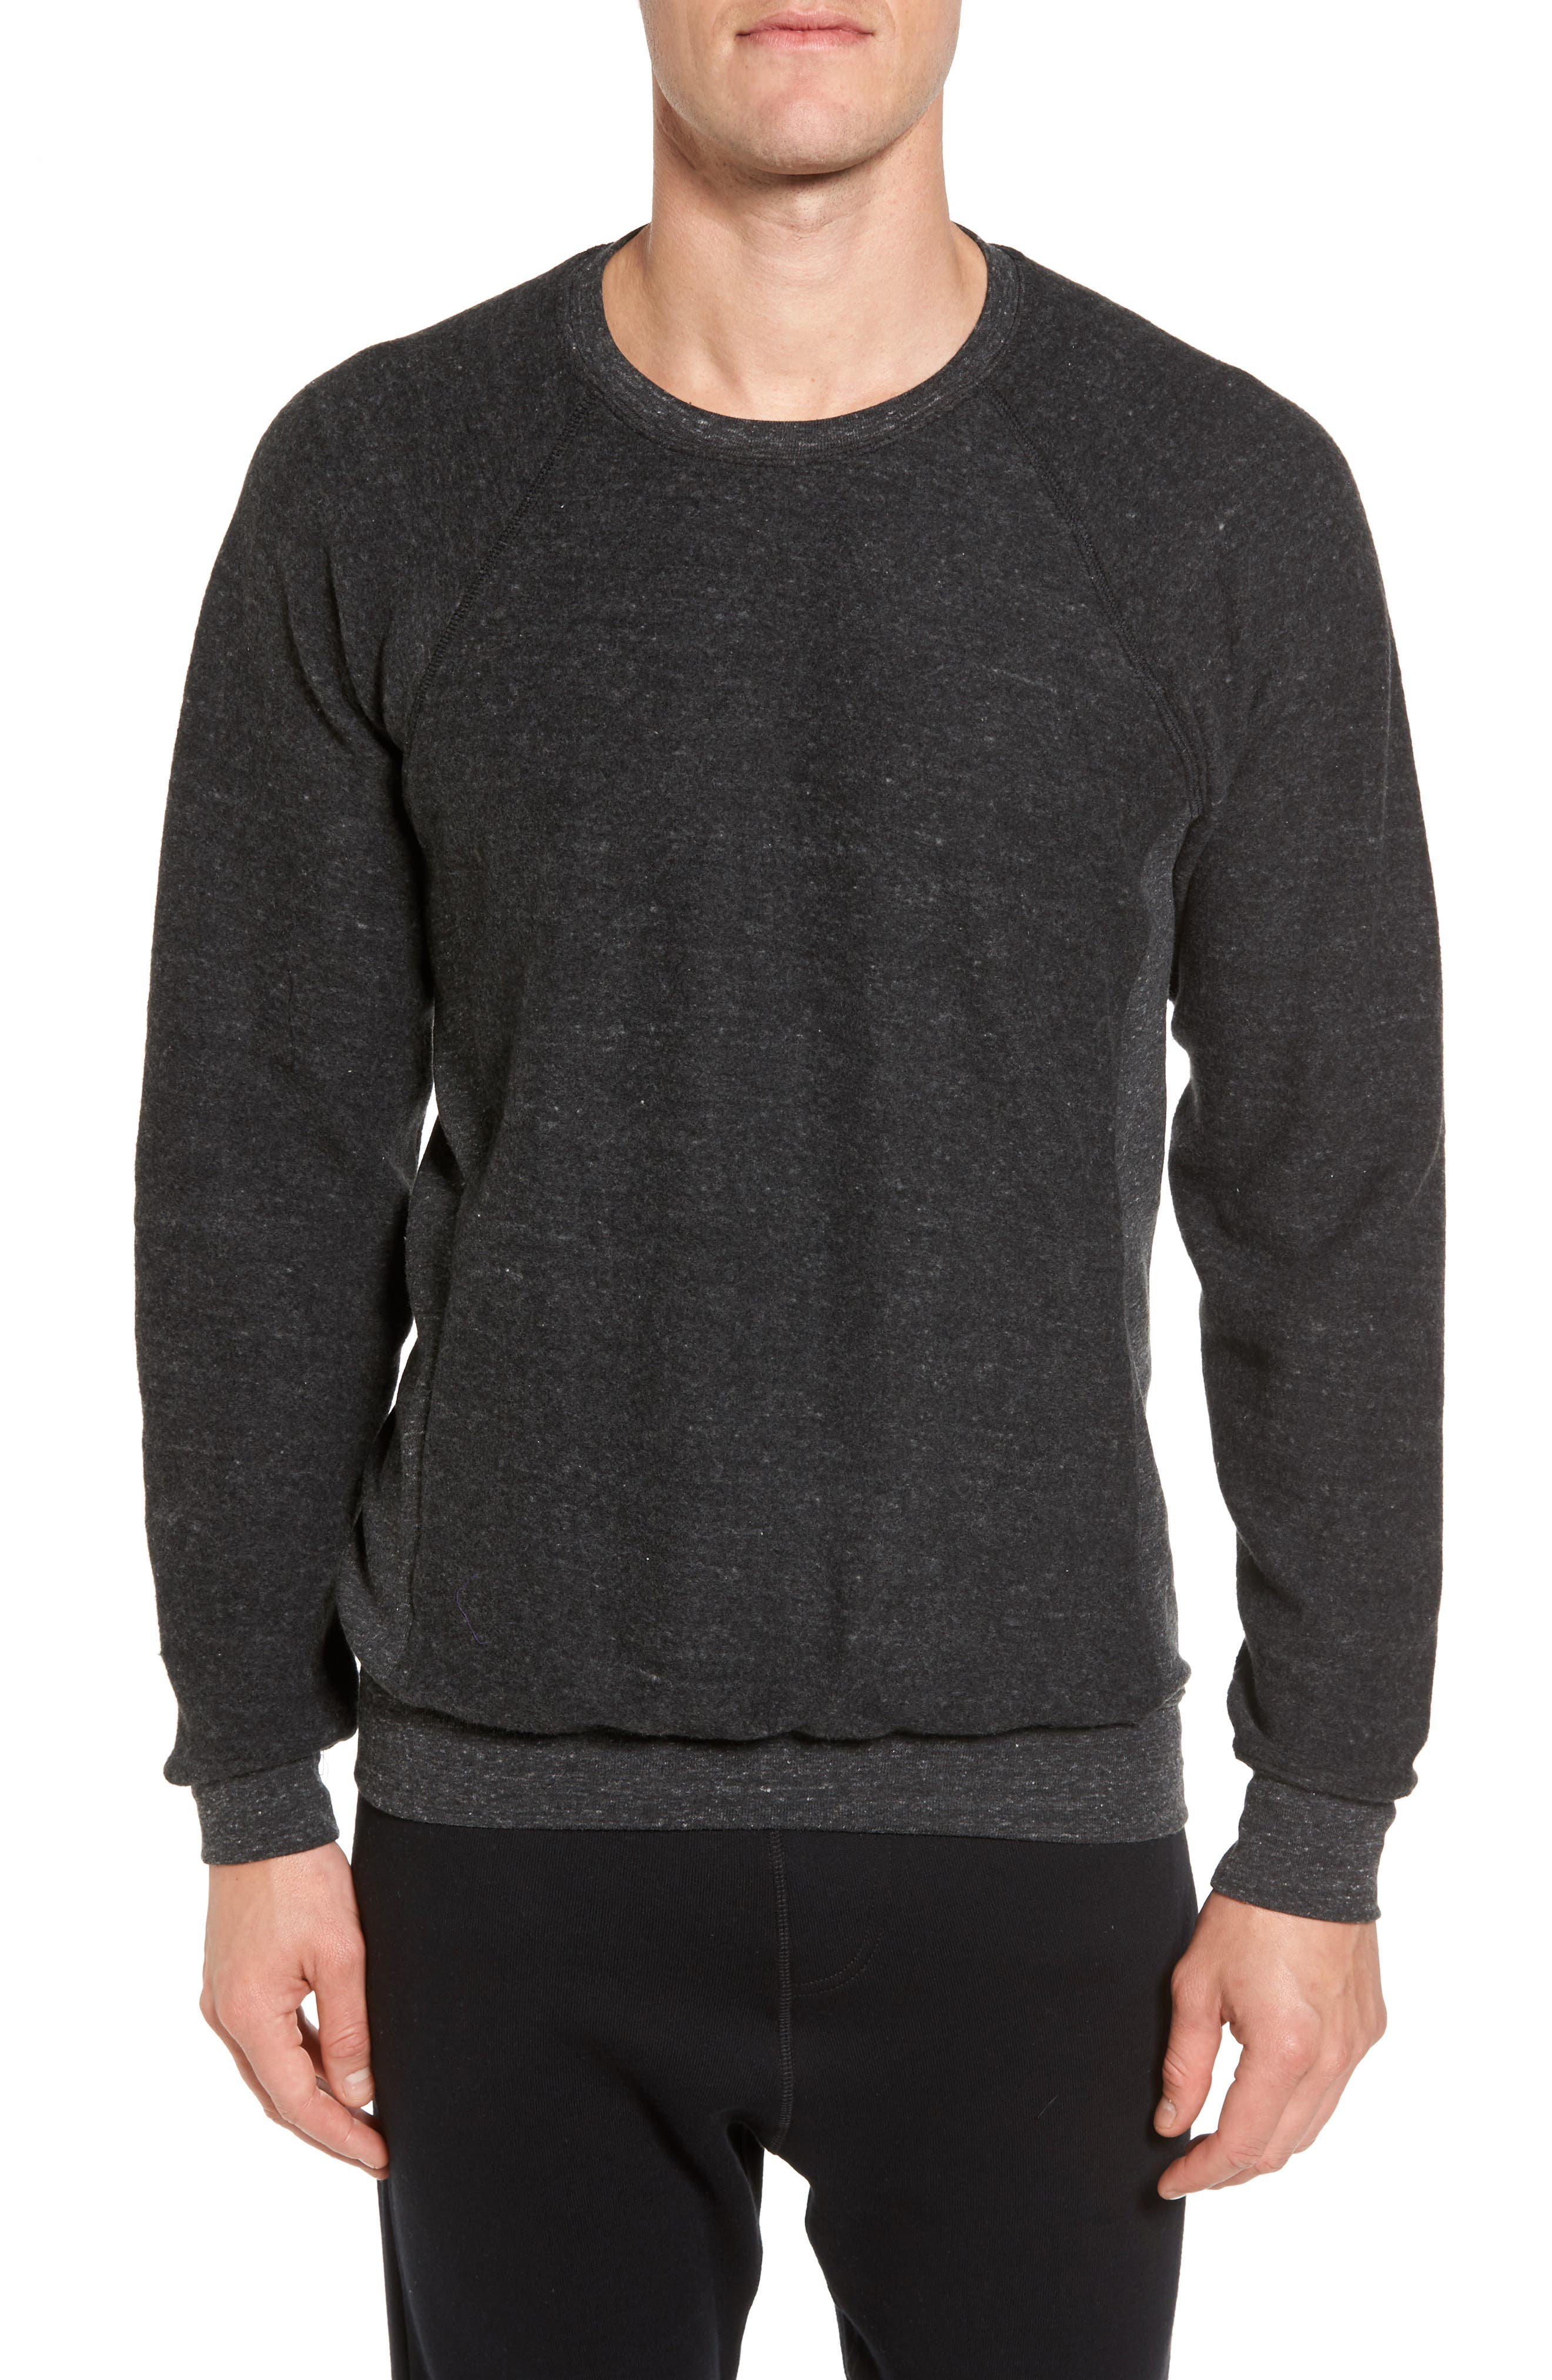 Relaxed Fit Felted Sweatshirt,                             Main thumbnail 1, color,                             CHARCOAL BLACK TRIBLEND